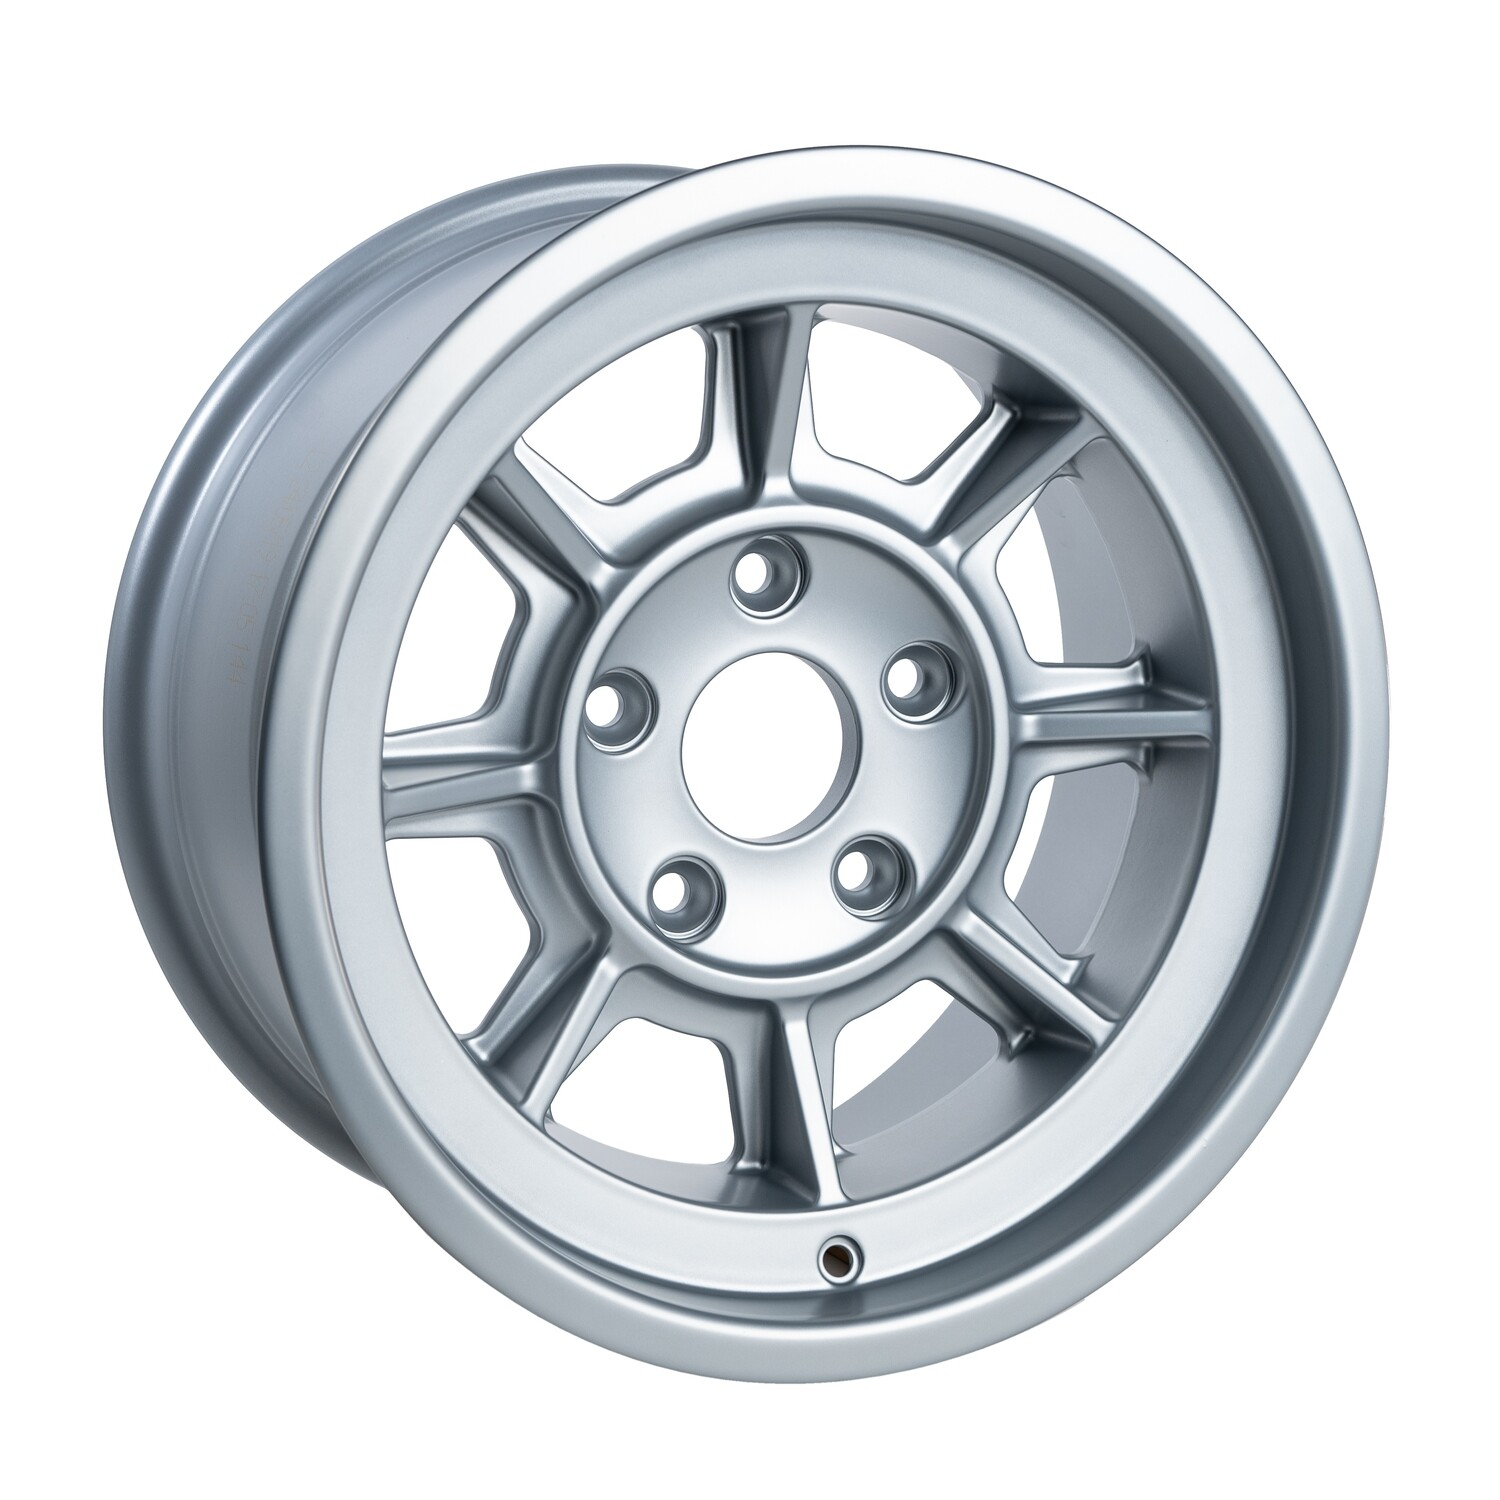 PAG1680 Satin Silver 16 x 8